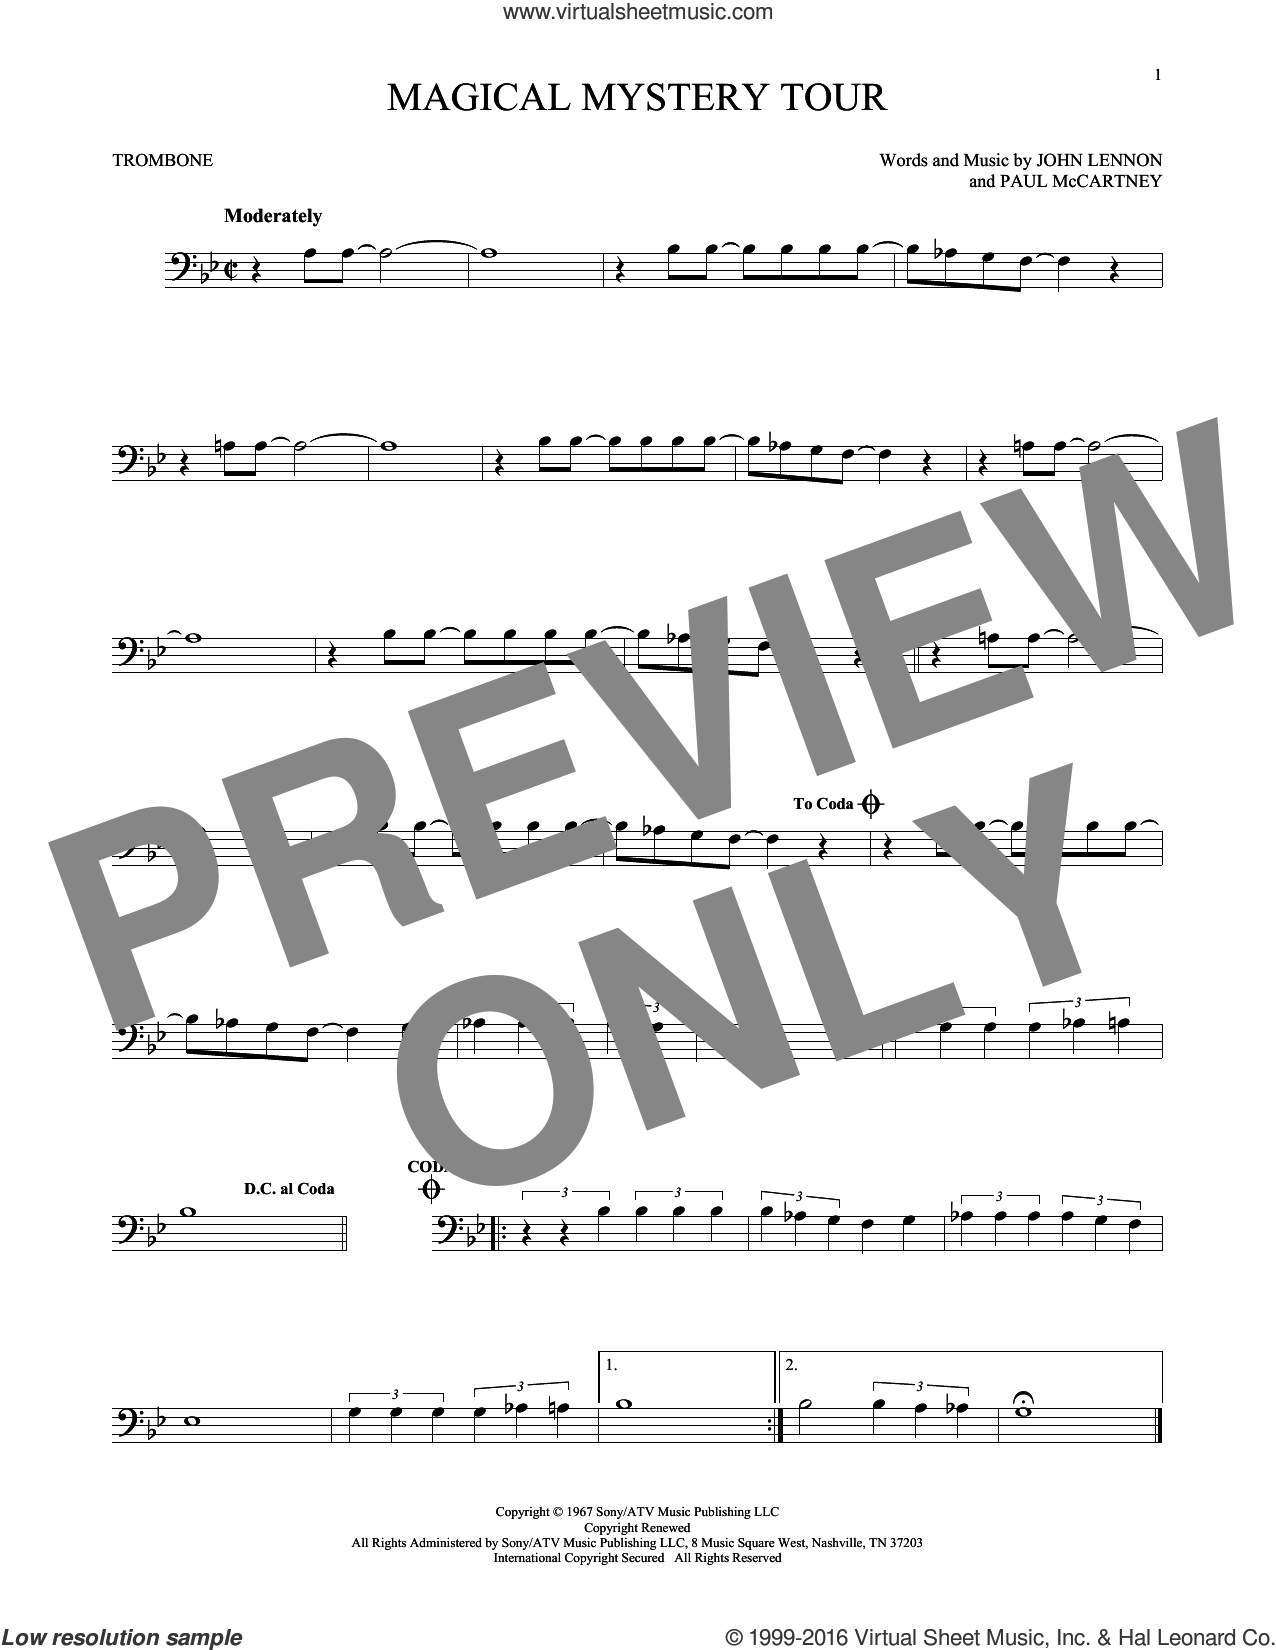 Magical Mystery Tour sheet music for trombone solo by The Beatles, John Lennon and Paul McCartney, intermediate trombone. Score Image Preview.